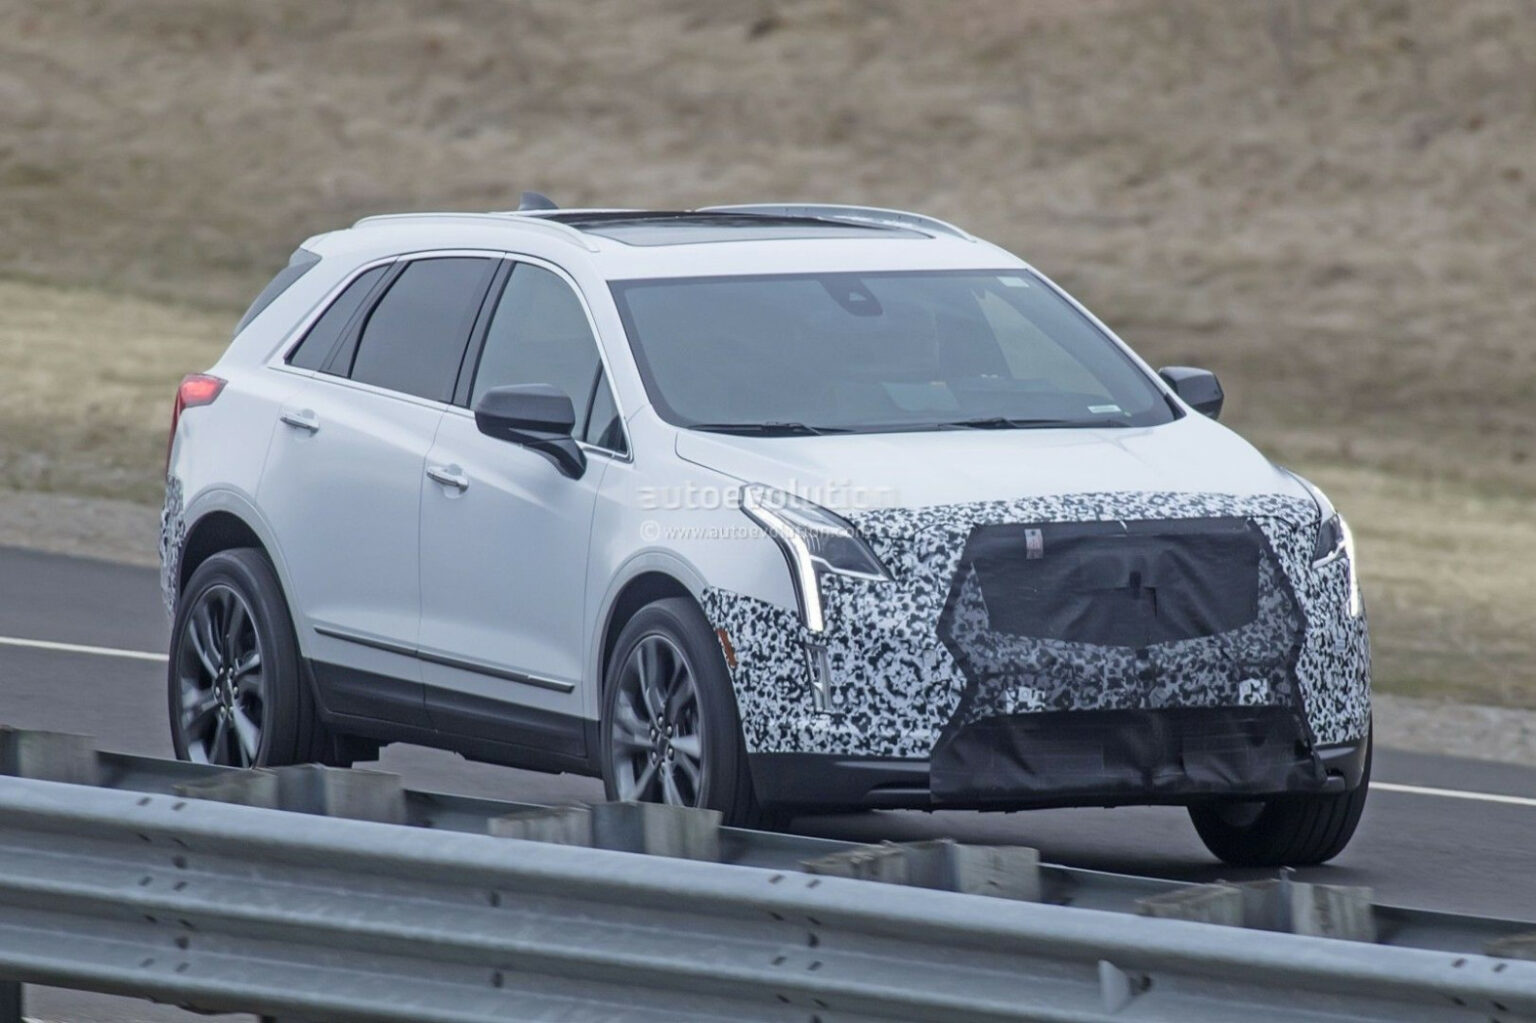 Price 2022 Spy Shots Cadillac Xt5 - Cars Review : Cars Review